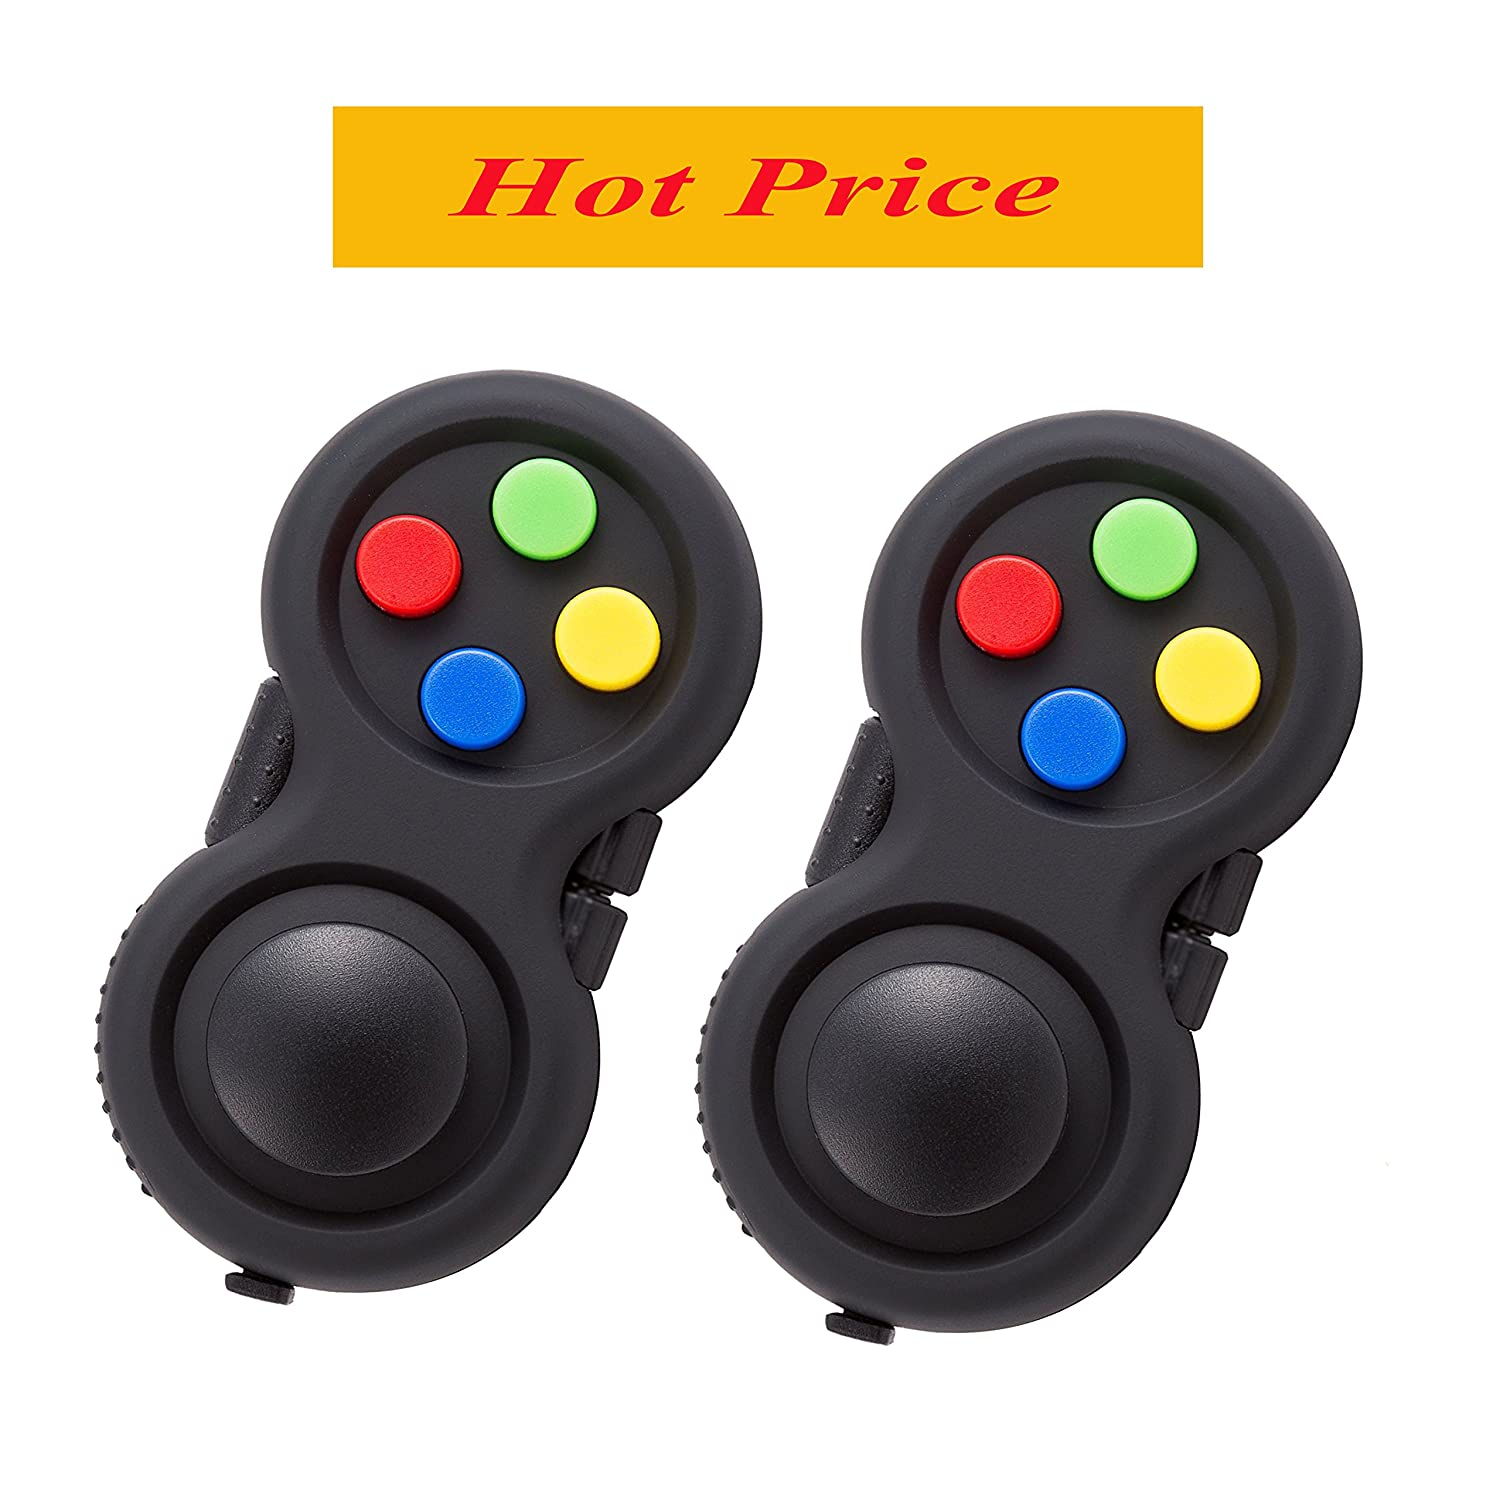 Fidget Pad - 9 Fidget Features (more than Fidget Cube) - Perfect For Skin Picking, ADD, ADHD, Anxiety and Stress Relief - Multi Color Rainbow on Black - Prime Ready and Shipped by  (2 of pack)